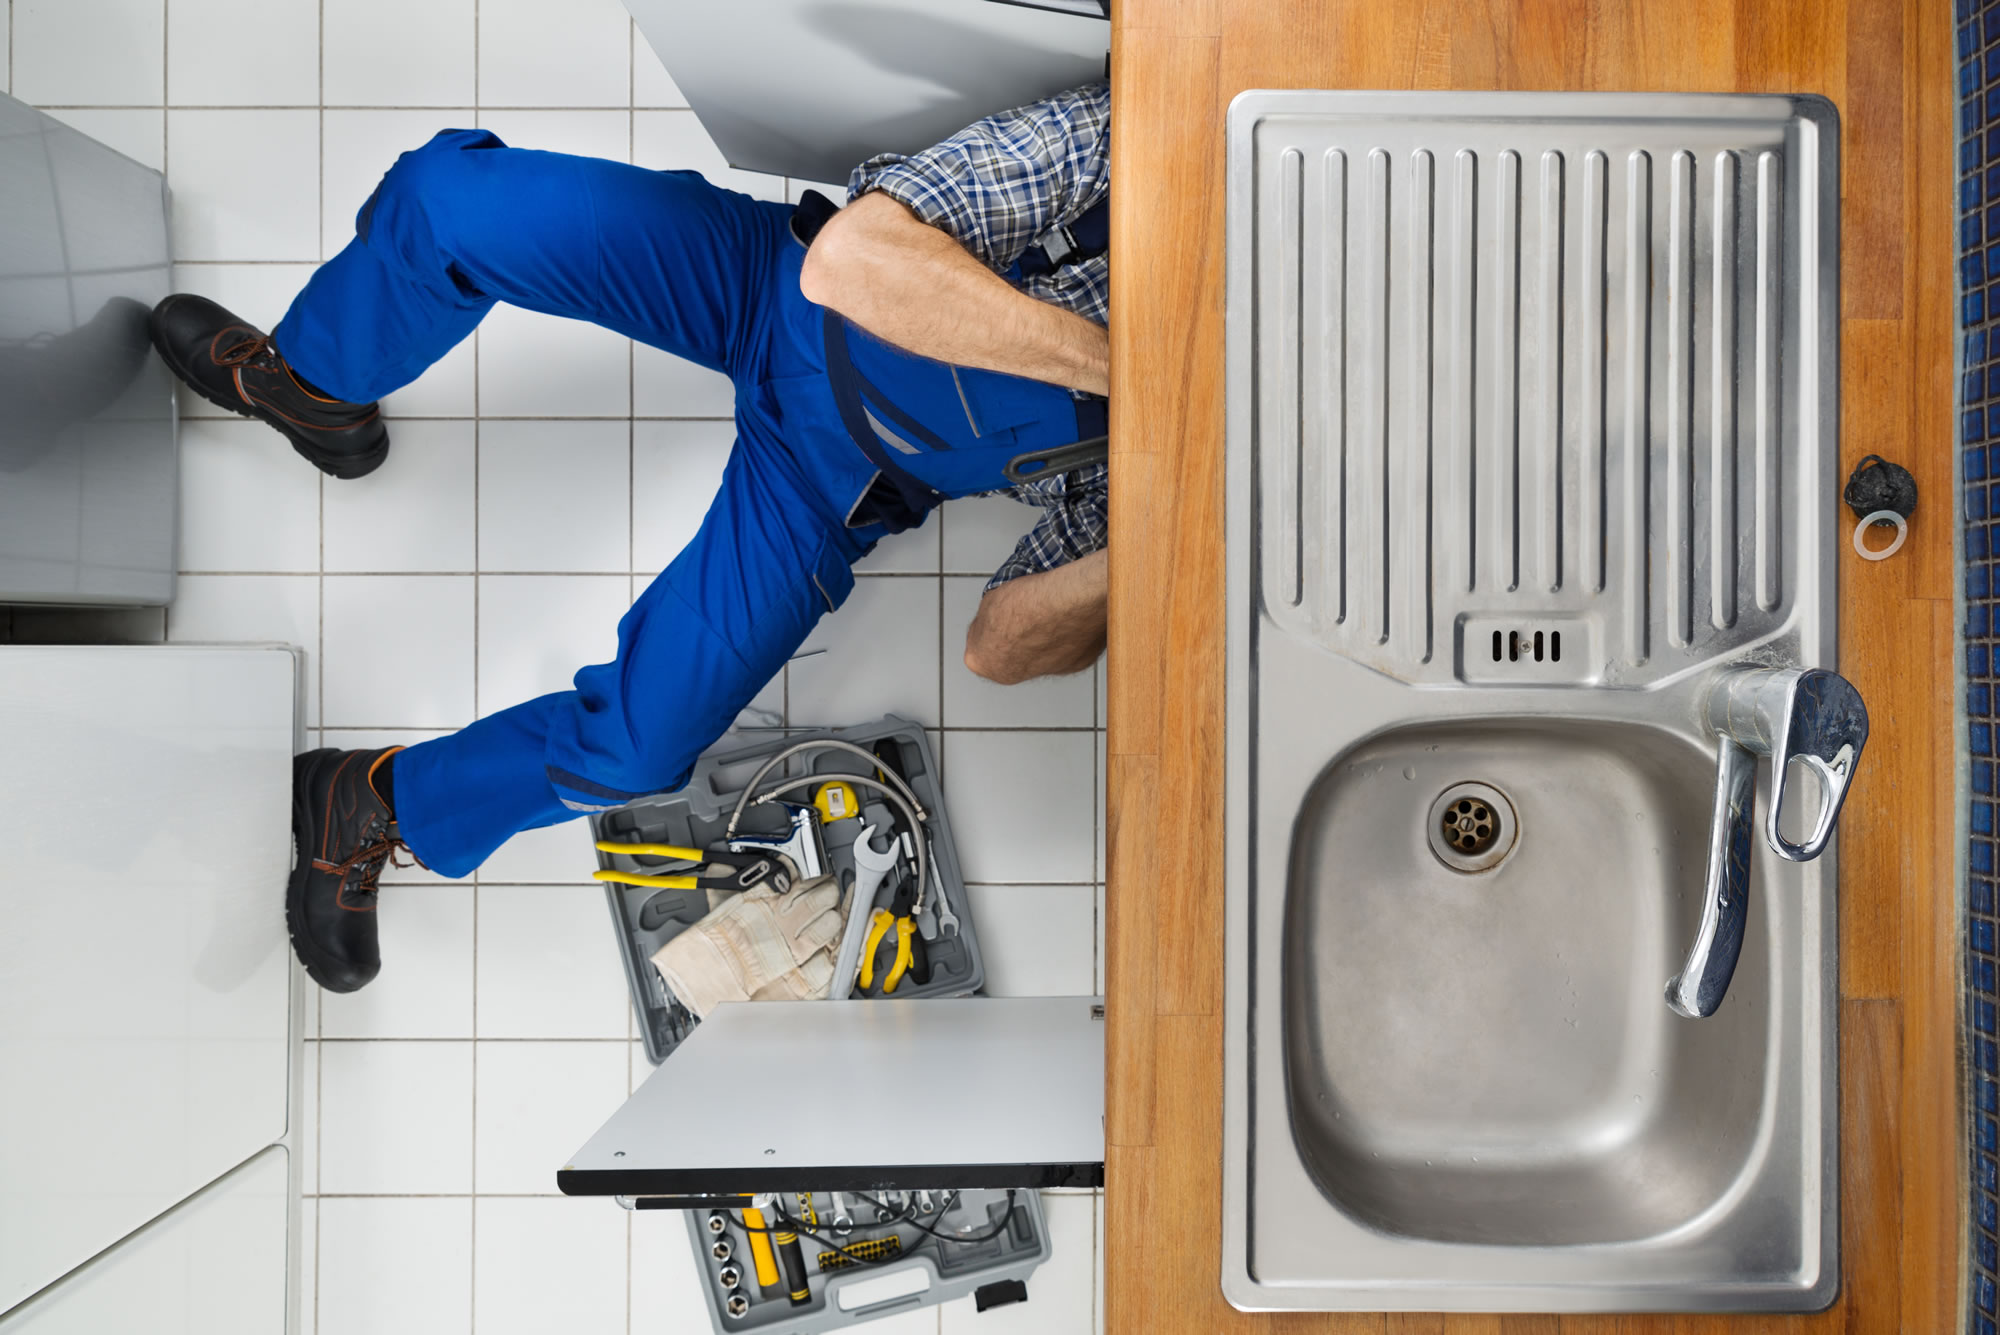 plumbing, commercial, residential, inland empire, riverside, corona, moreno valley, surrounding areas, tools, plumber, sink